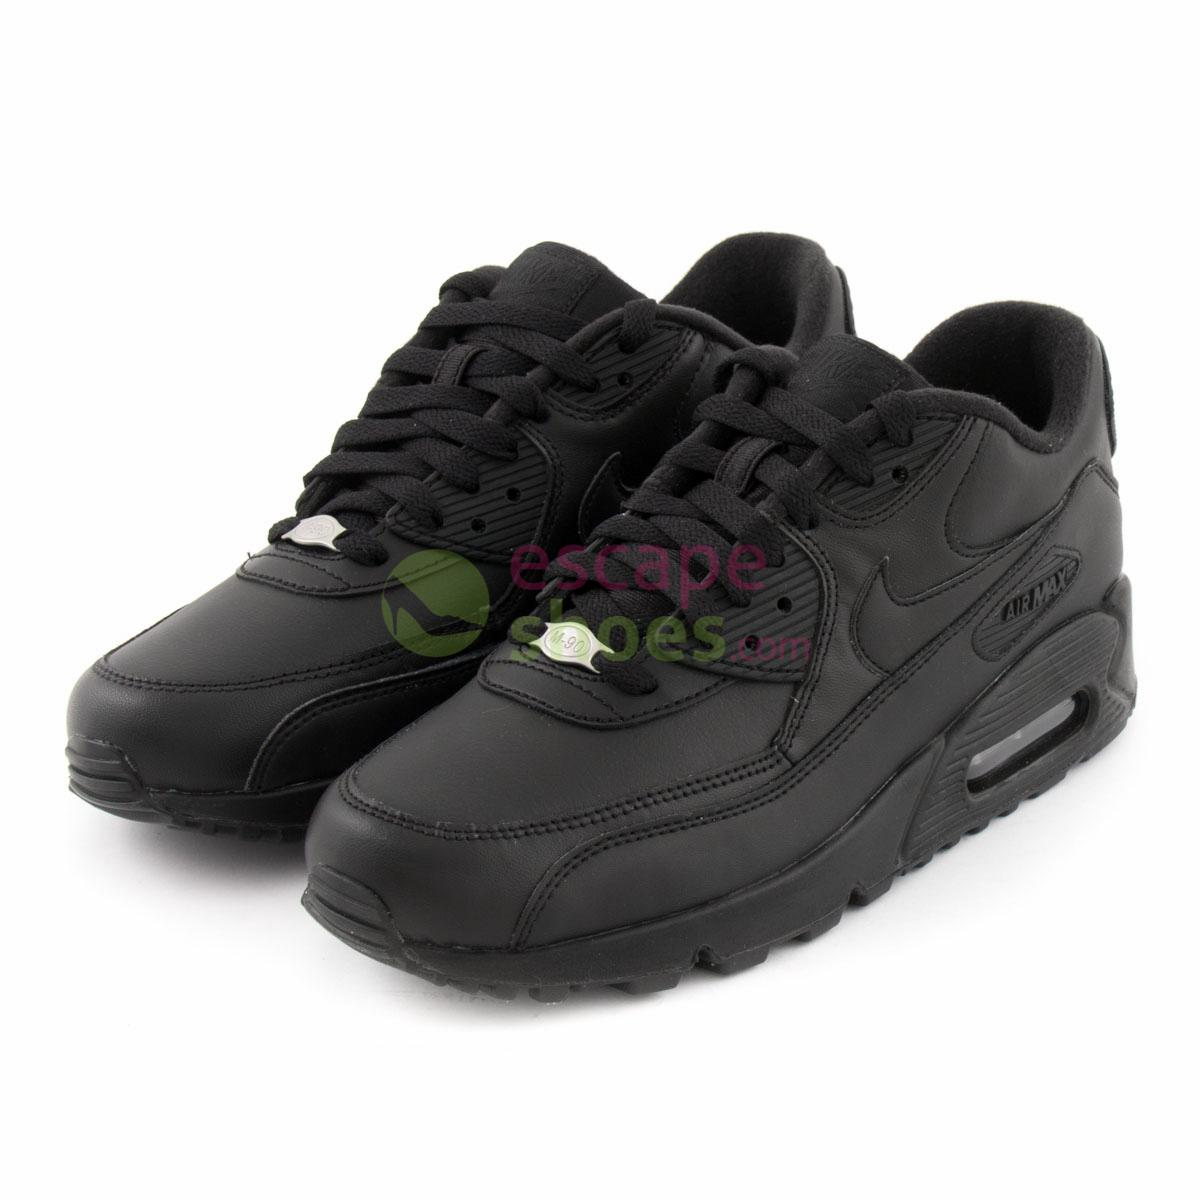 Compre aqui NIKE Air Max 90 Leather Black 302519 001  98e30614dd9e7